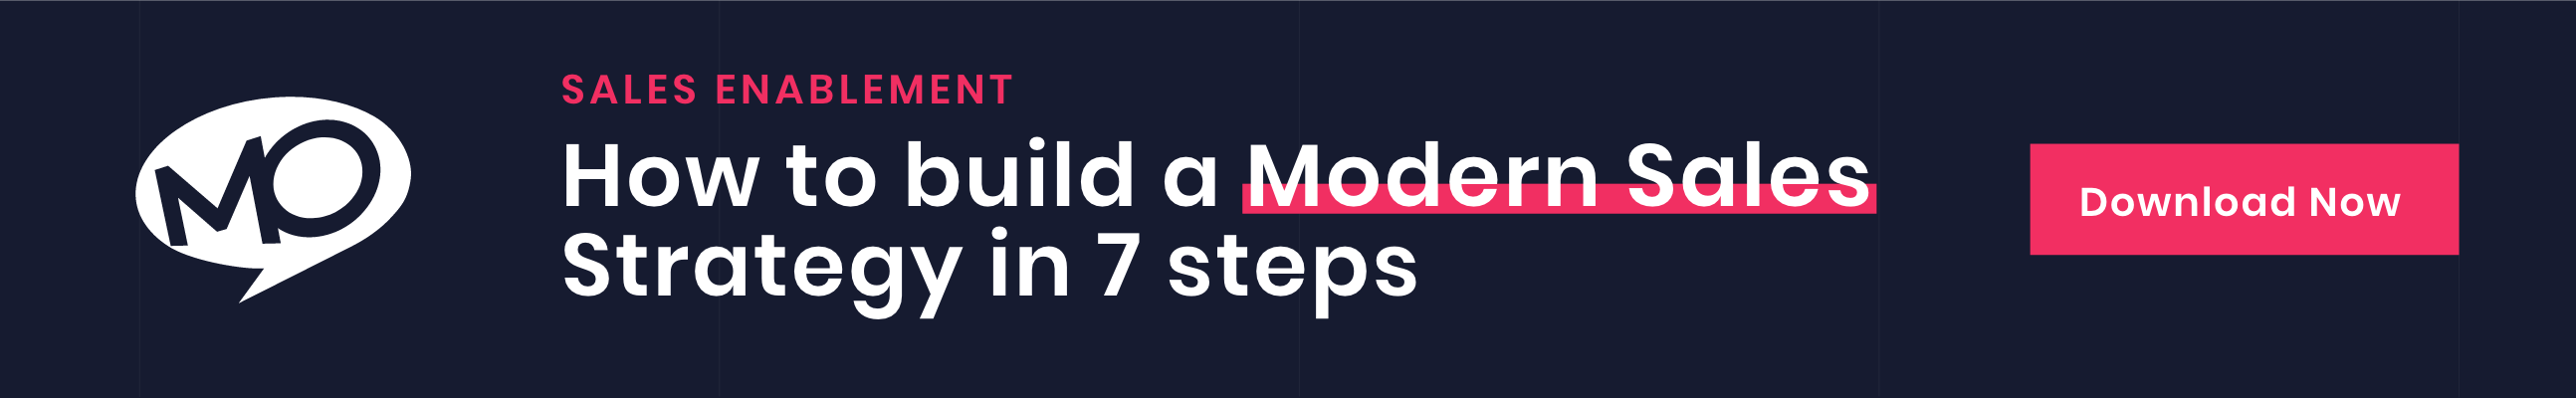 How to build a modern sales strategy in 7 steps